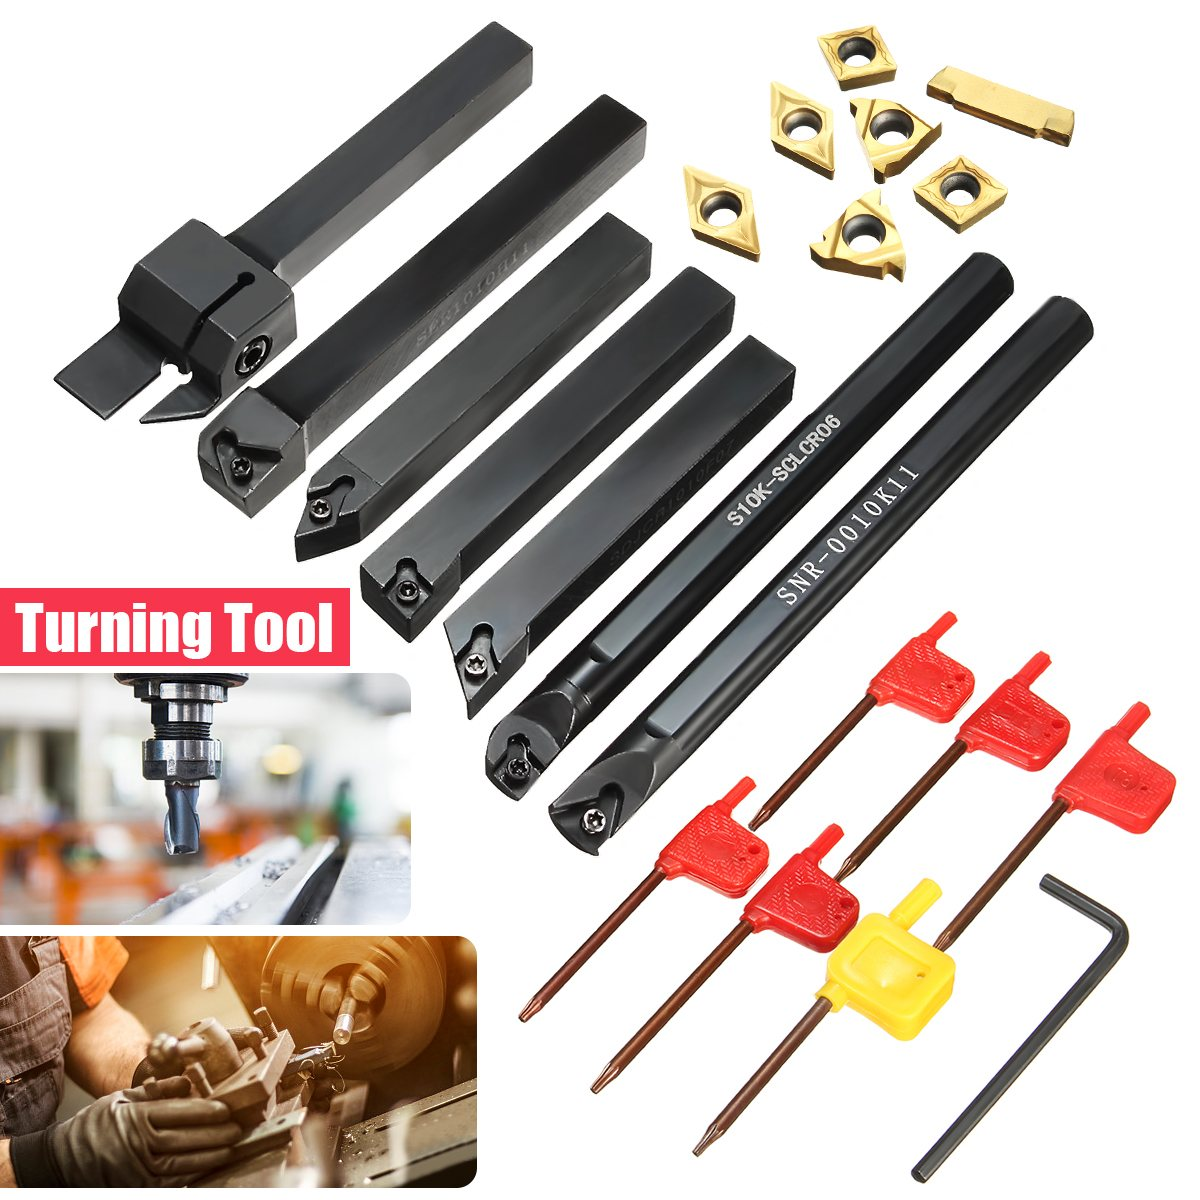 New 7pcs 10mm Boring Bar Lathe Turning Tool Holder with Gold Inserts with 7pcs T8 Wrenches ser1616h16 holder external thread turning tool boring bar holder with 10pcs 16er ag60 inserts